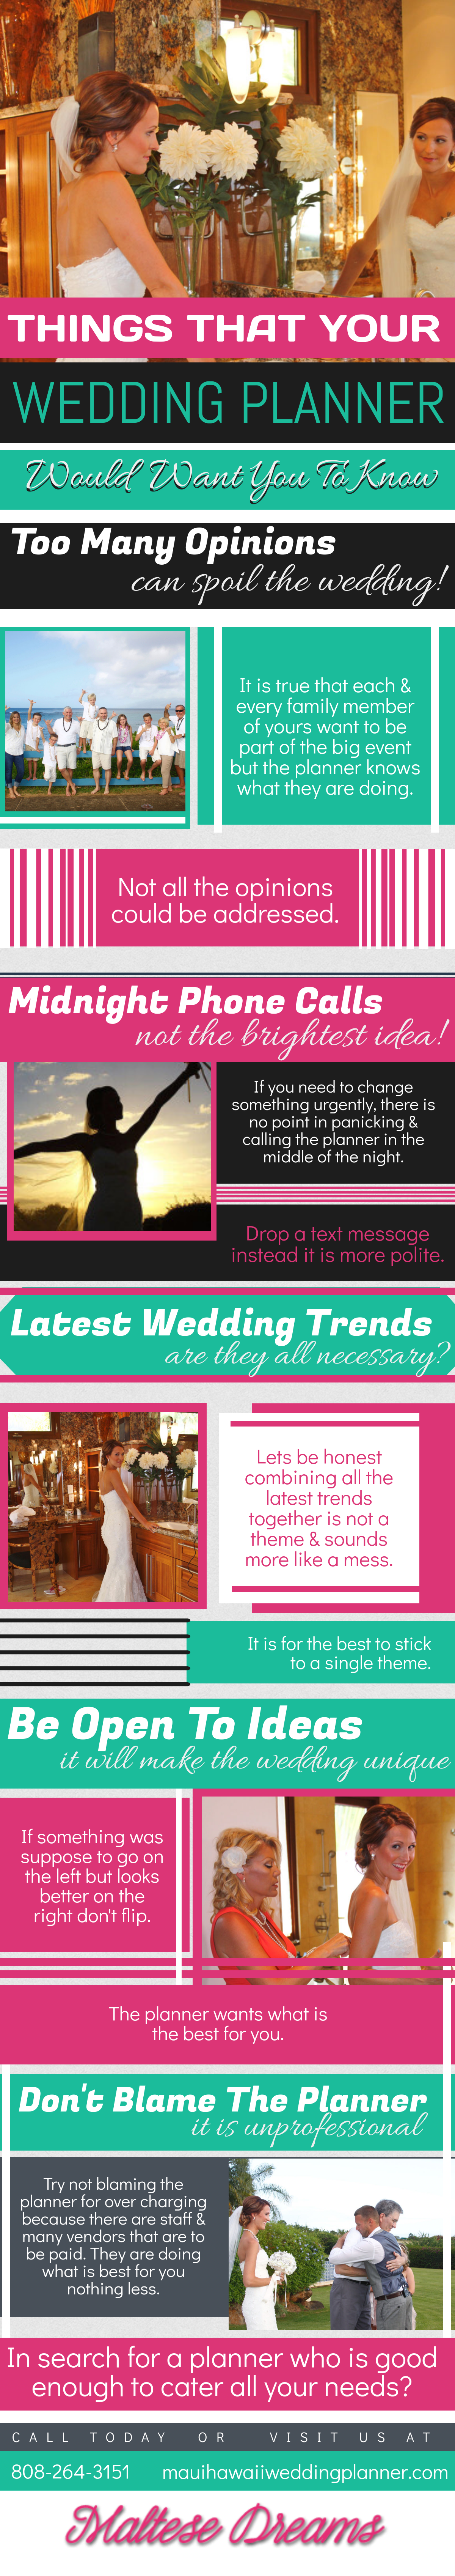 Things that Your Wedding Planner Would Want You to Know [ Infographic ]